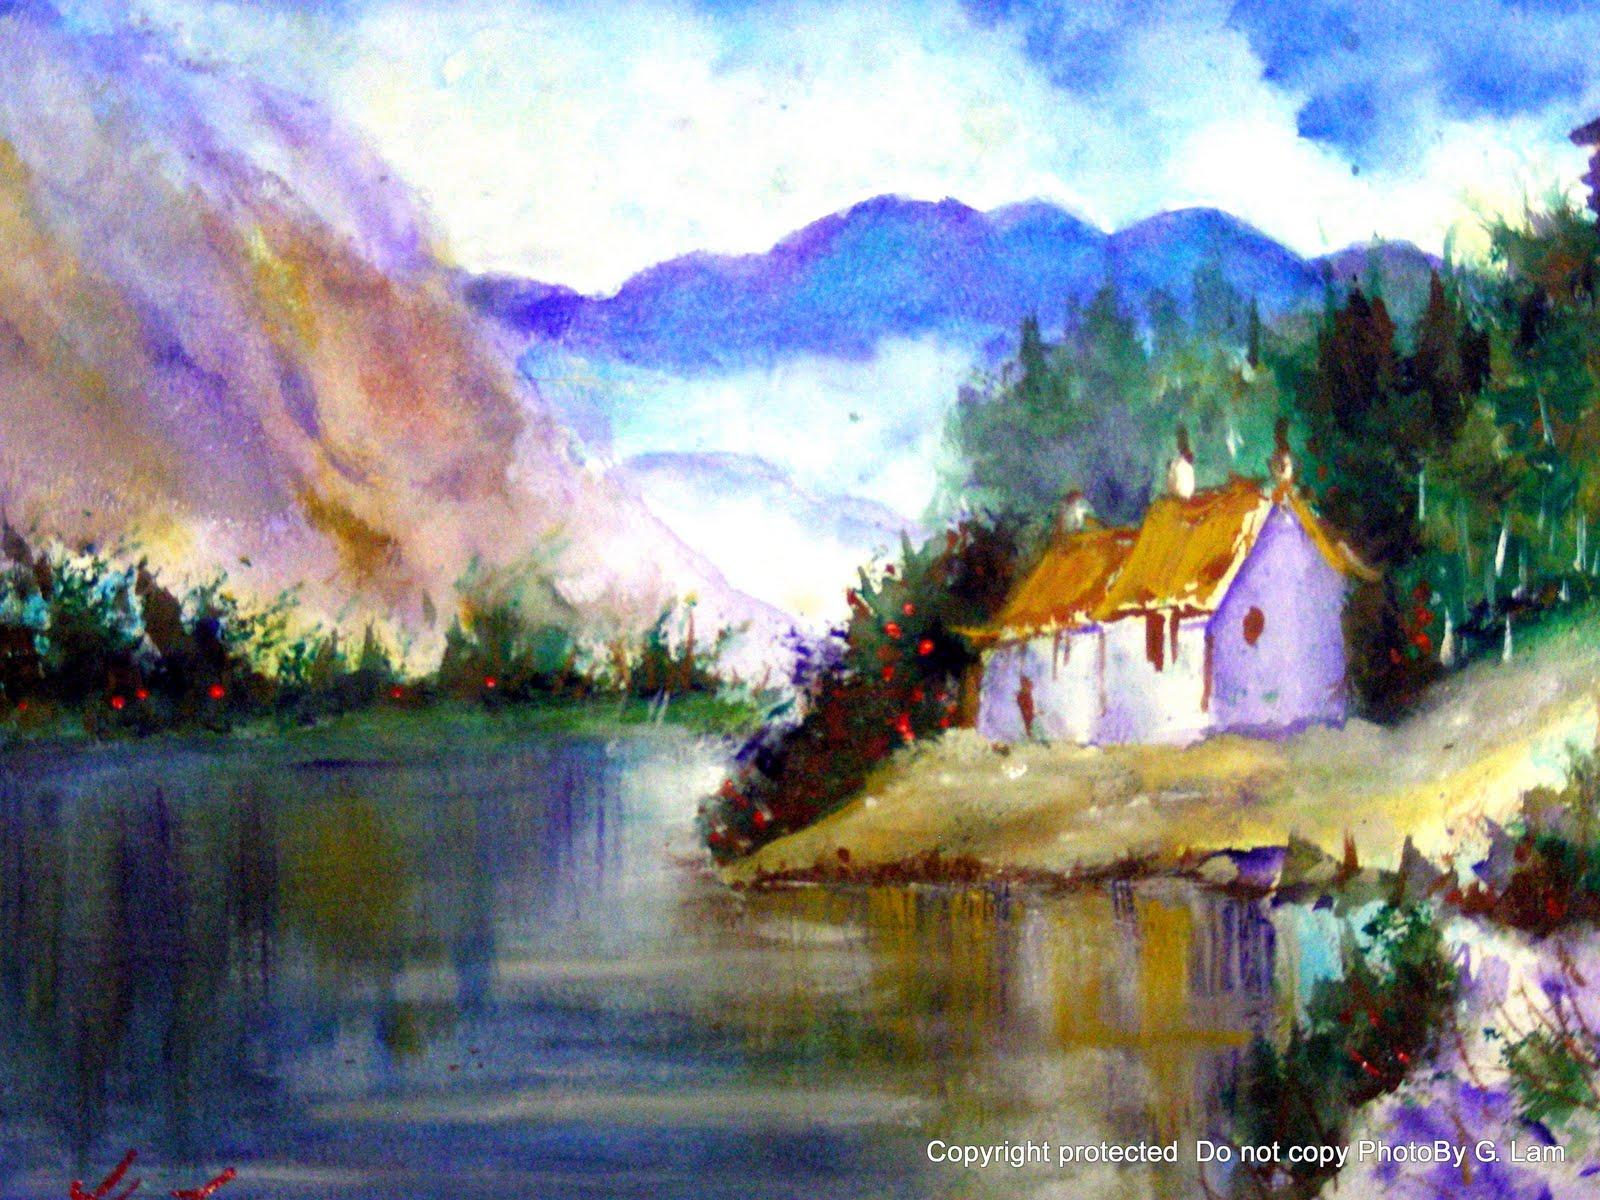 Artscanyon Gallery: Two Watercolor Landscape Paintings